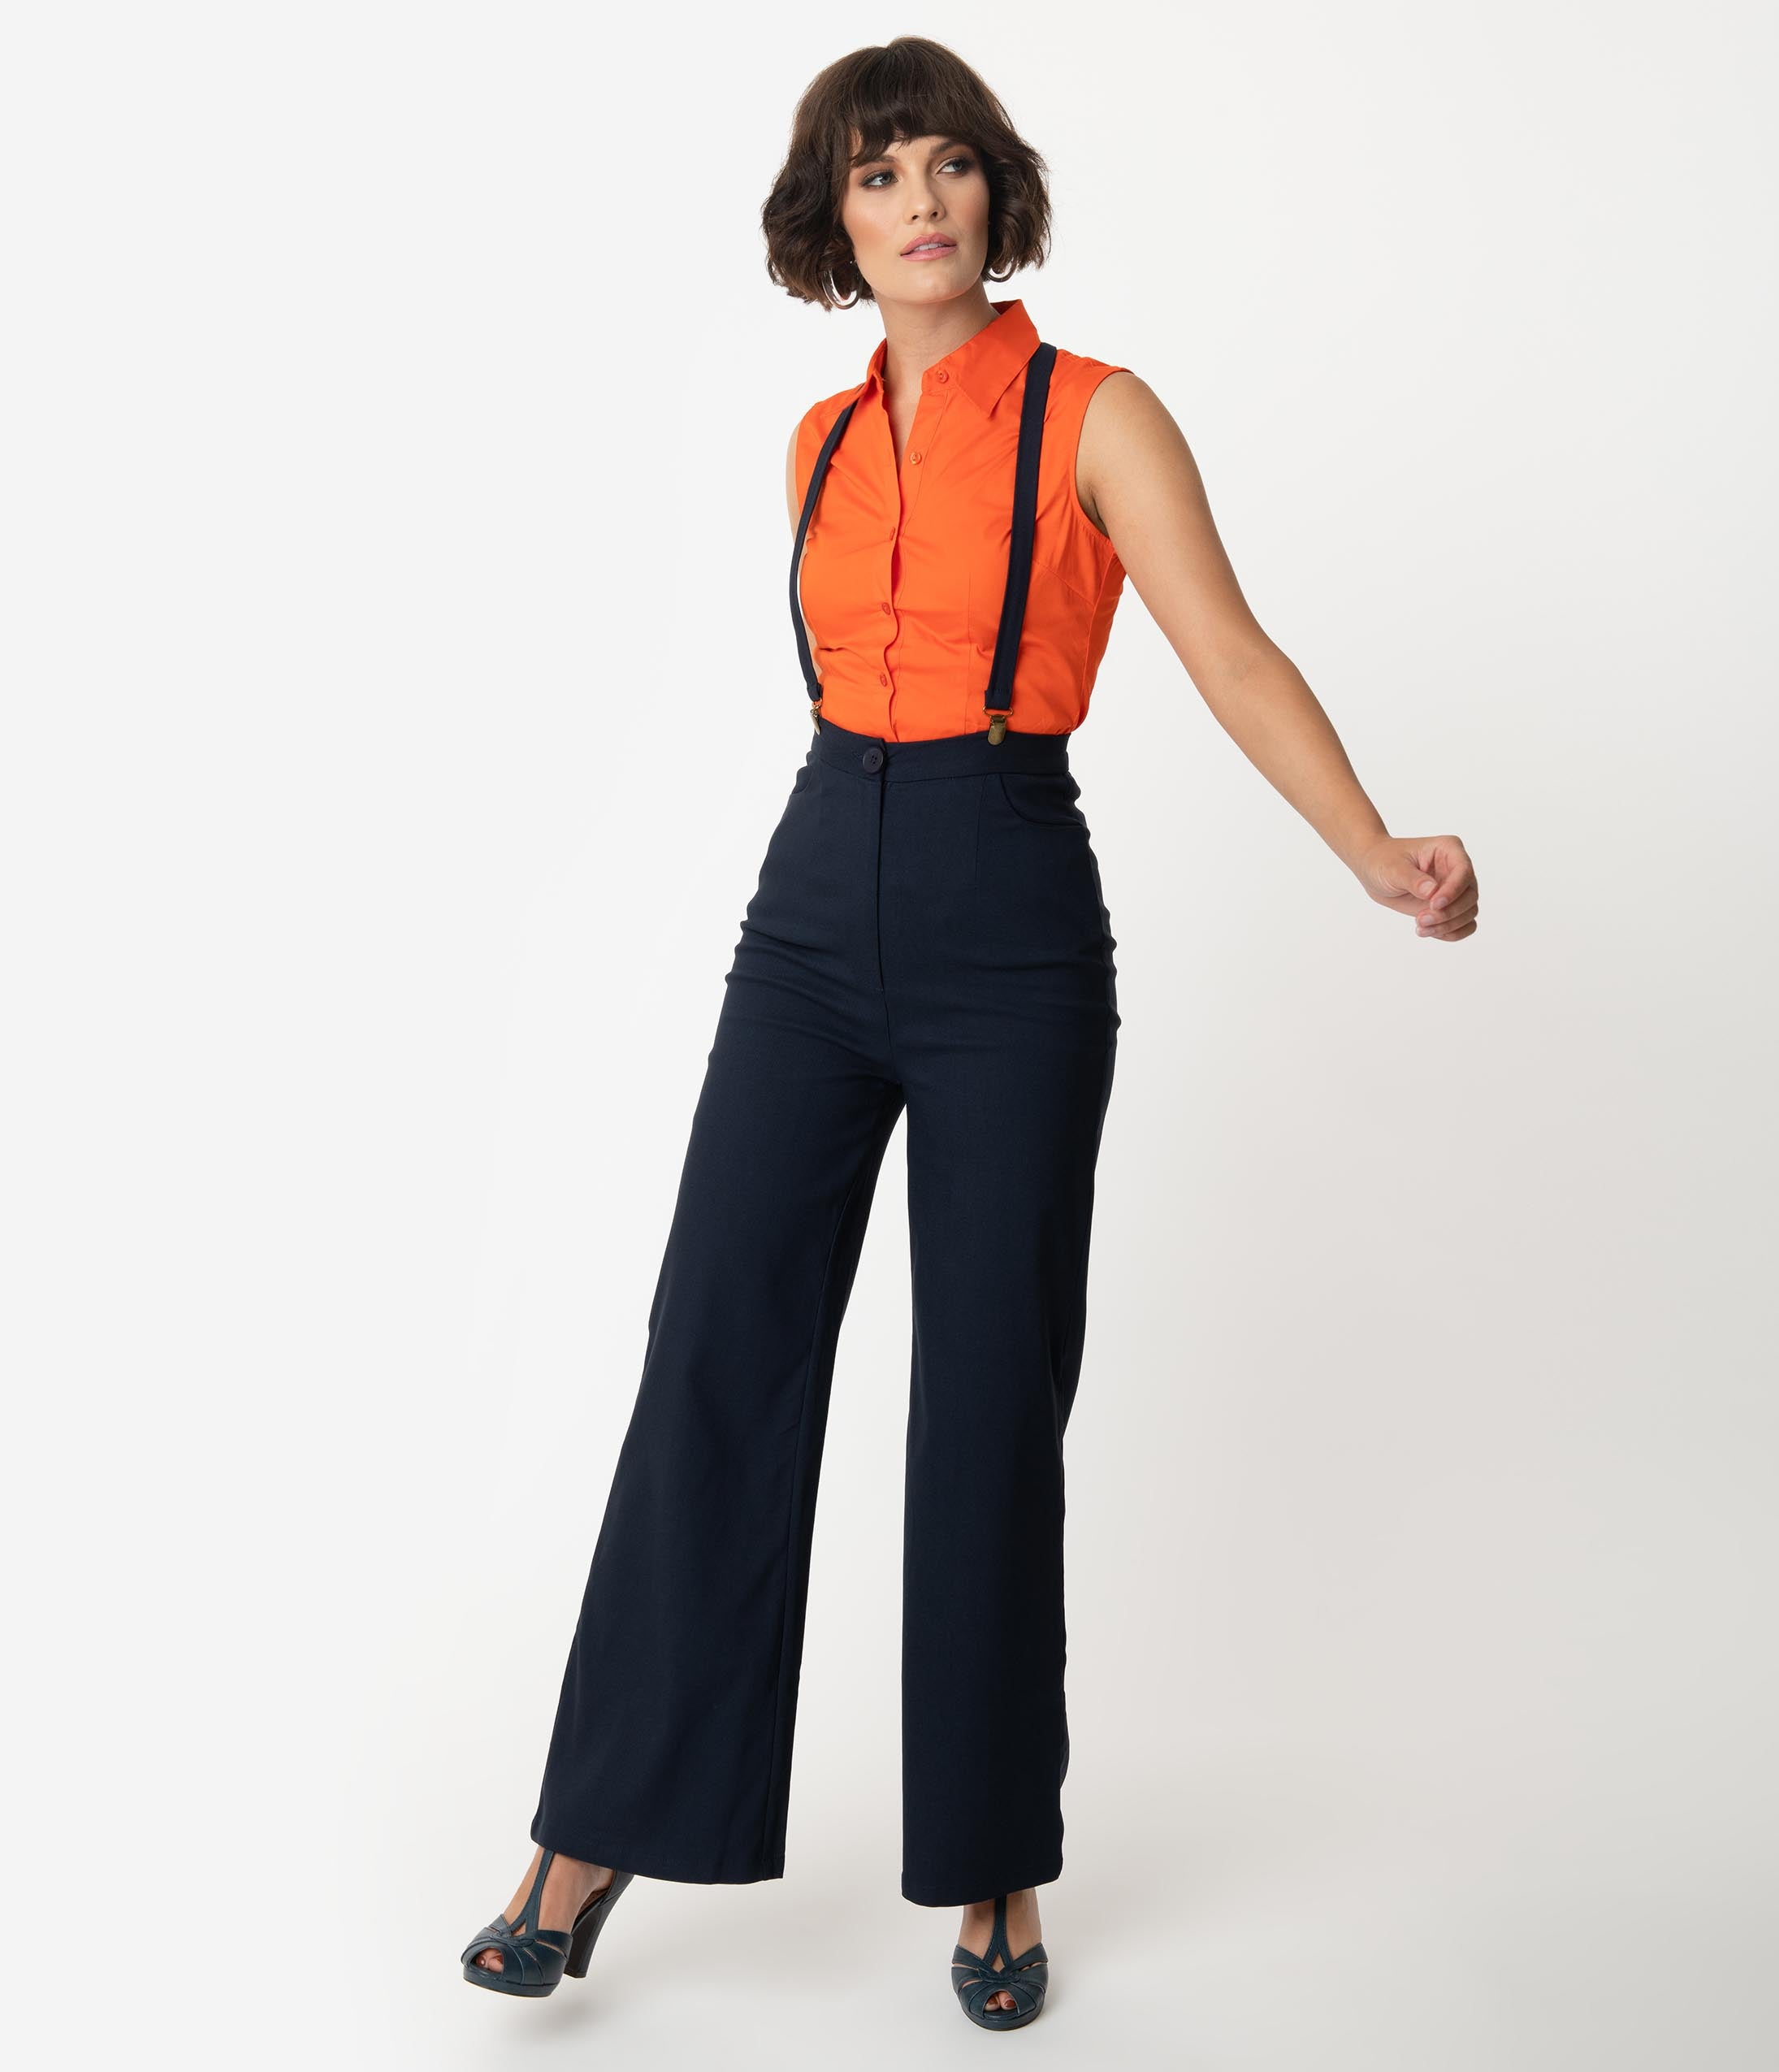 Blue and red striped trousers  Women/'s high waist pants  Vintage Summer stripe pantalon  90s straight leg highwaisted trousers  Size L